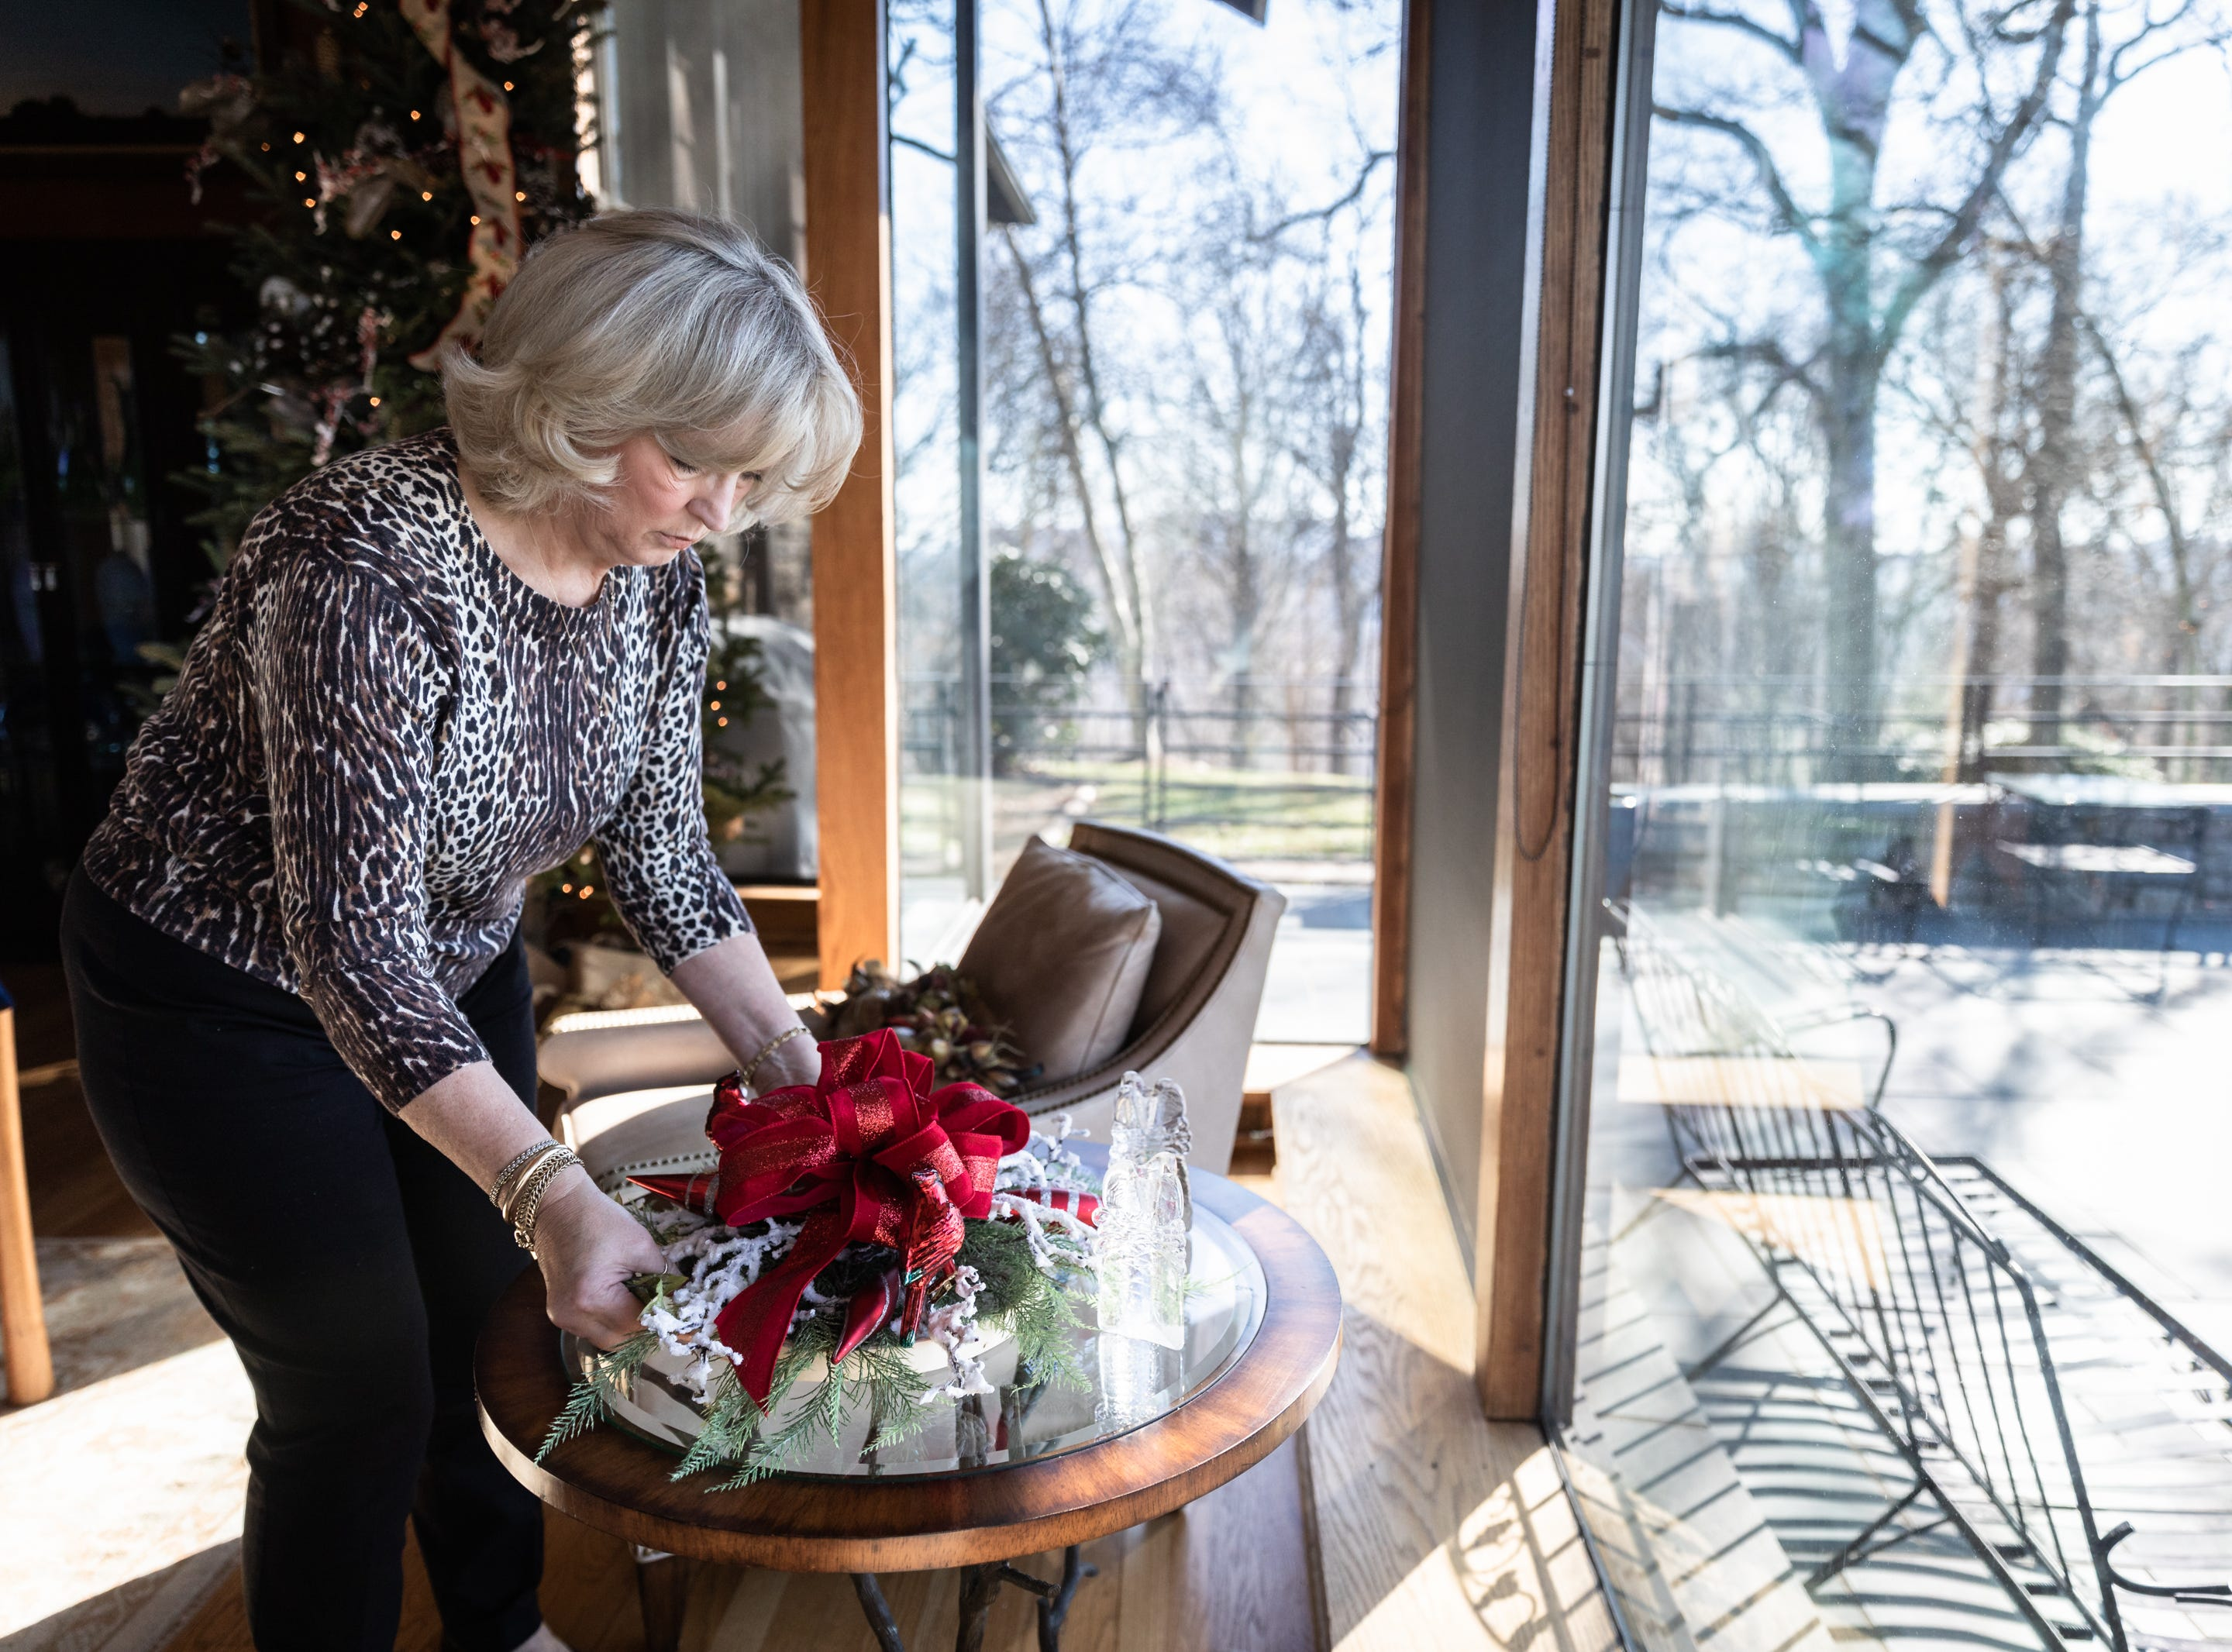 June Ray, of Waynesville, a member of the Governor's Western Residence Board of Directors, places a wreath for the holidays at the residence on Patton Mountain Road in Asheville, Nov. 29, 2018.